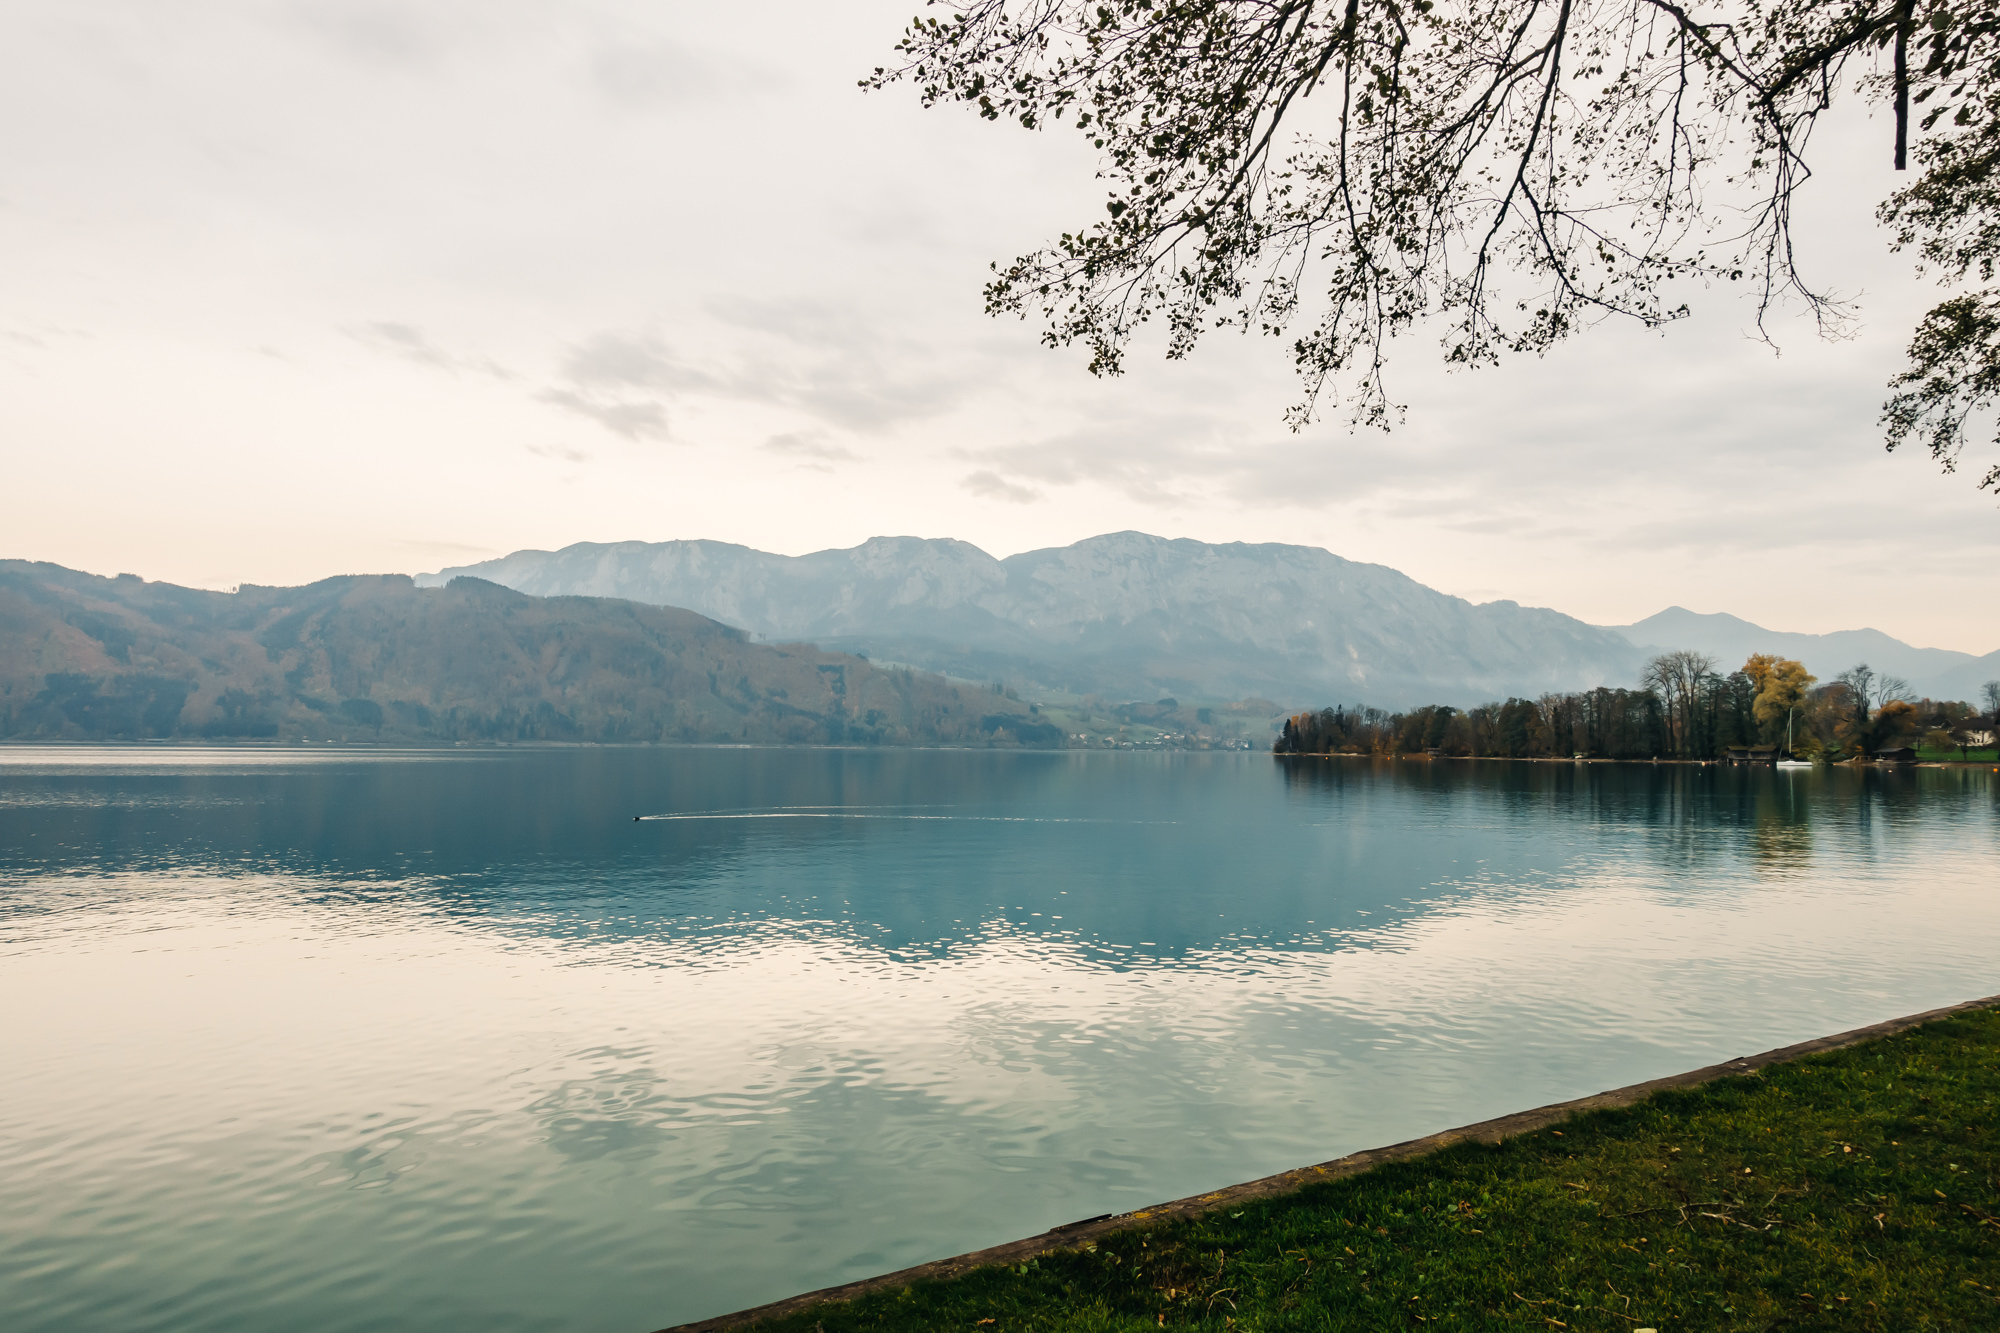 Our second stop at Lake Attersee